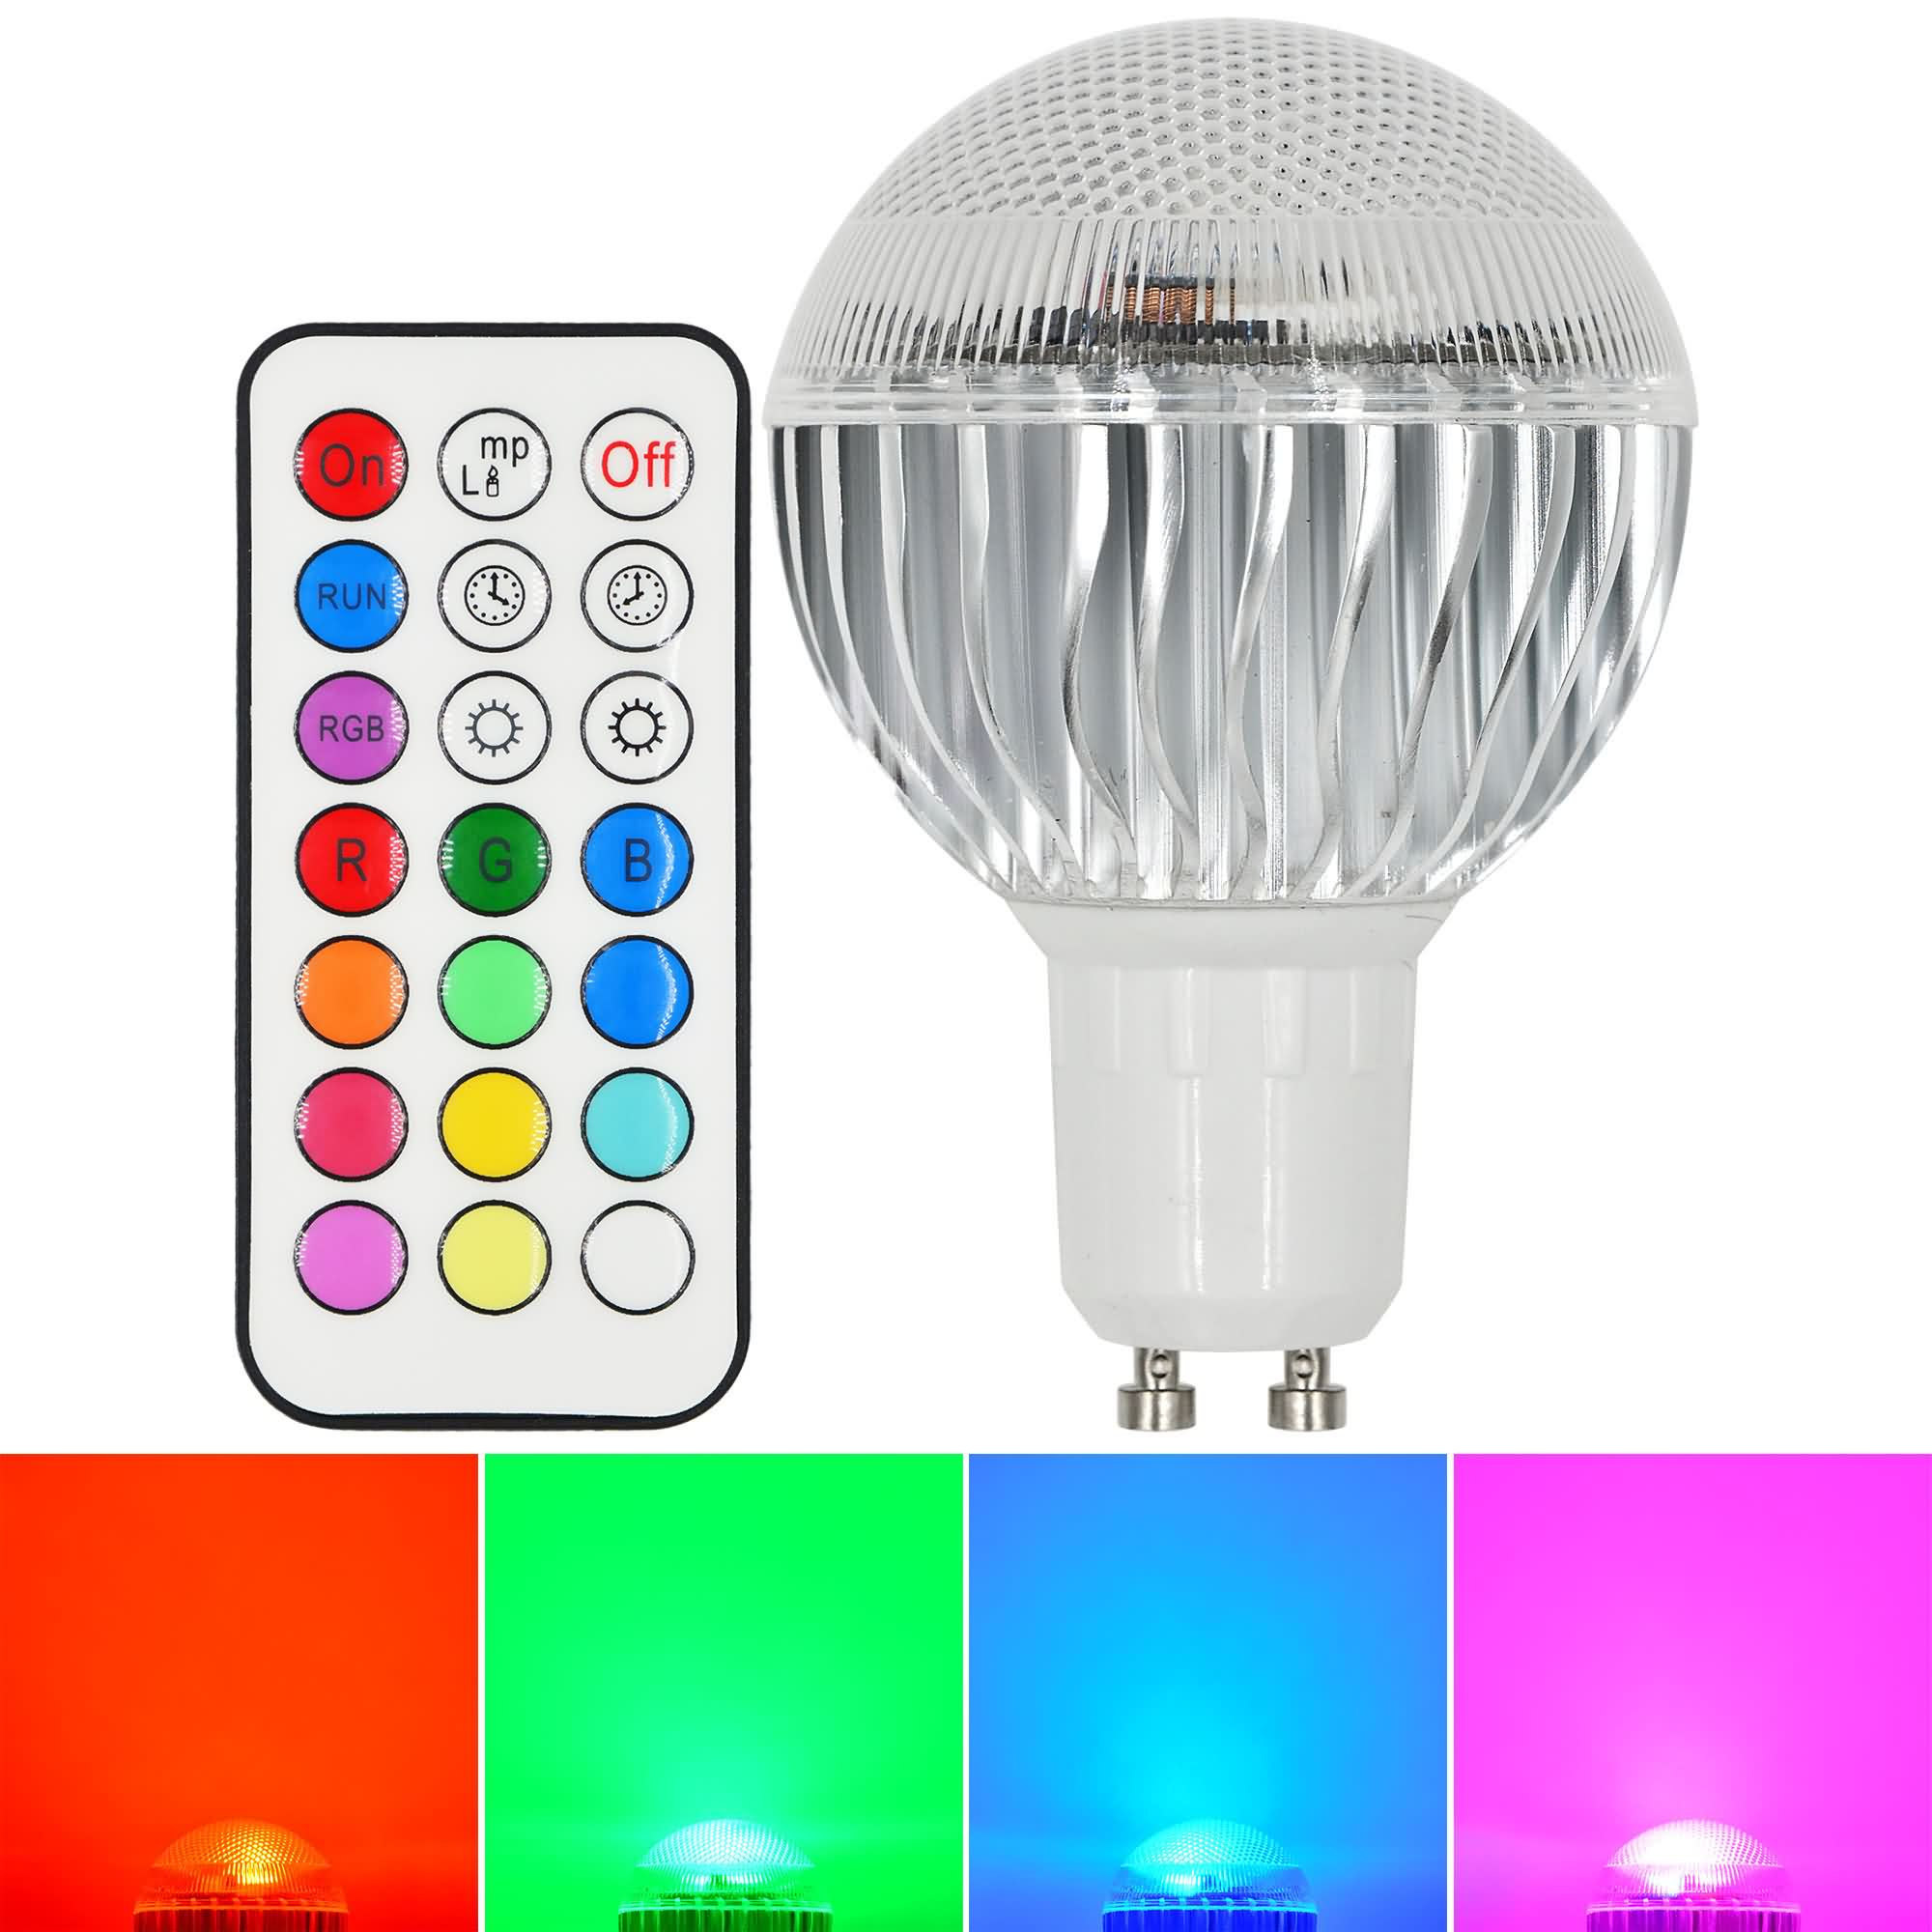 mengsled mengs gu10 8w led rgb light 16 colour changing smd leds led globe lamp bulb with ir. Black Bedroom Furniture Sets. Home Design Ideas